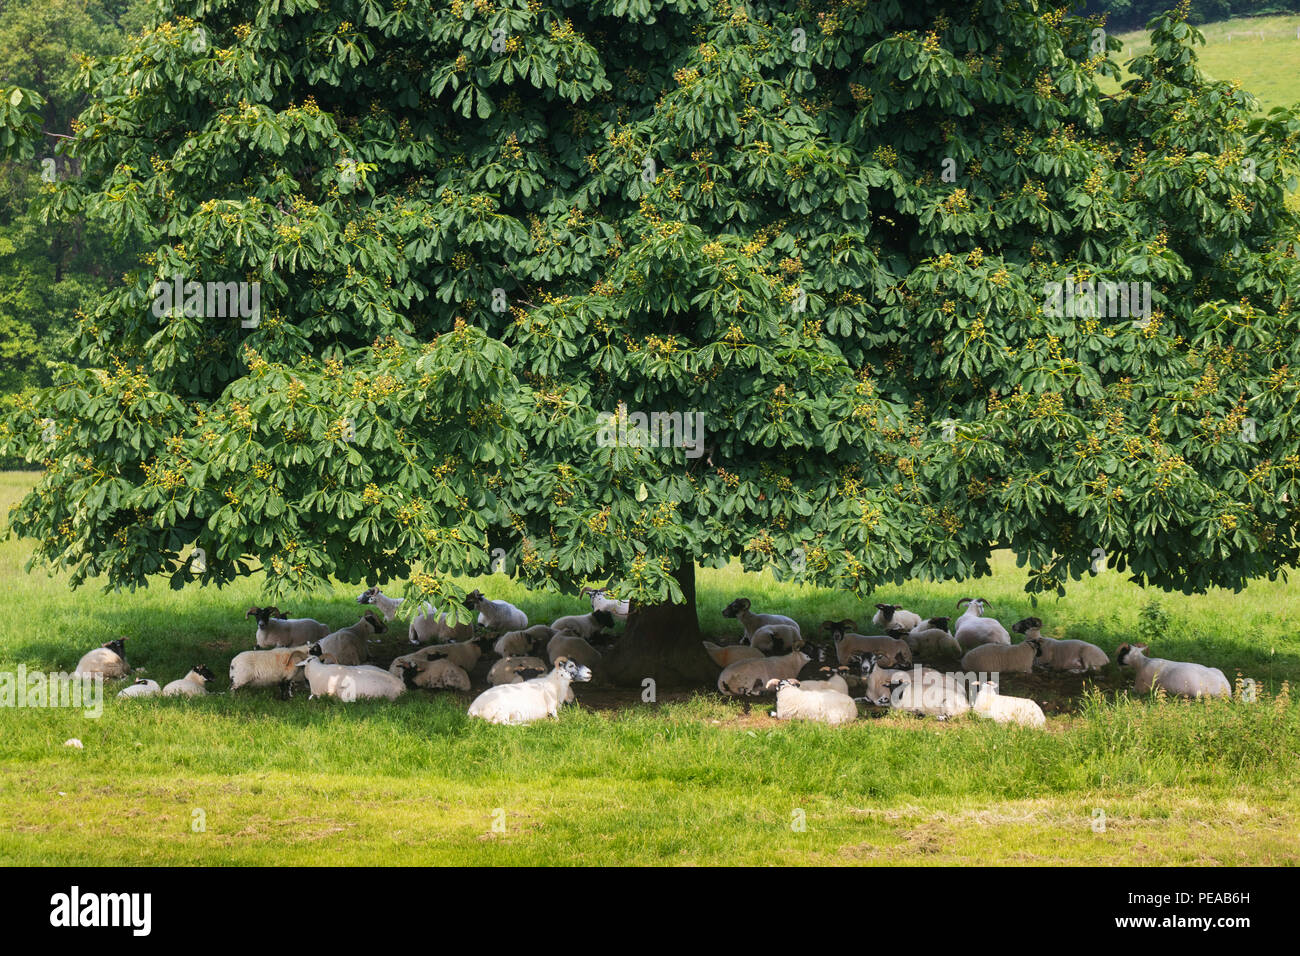 A flock of sheep sheltering under a tree on a hot day in Scotland. - Stock Image